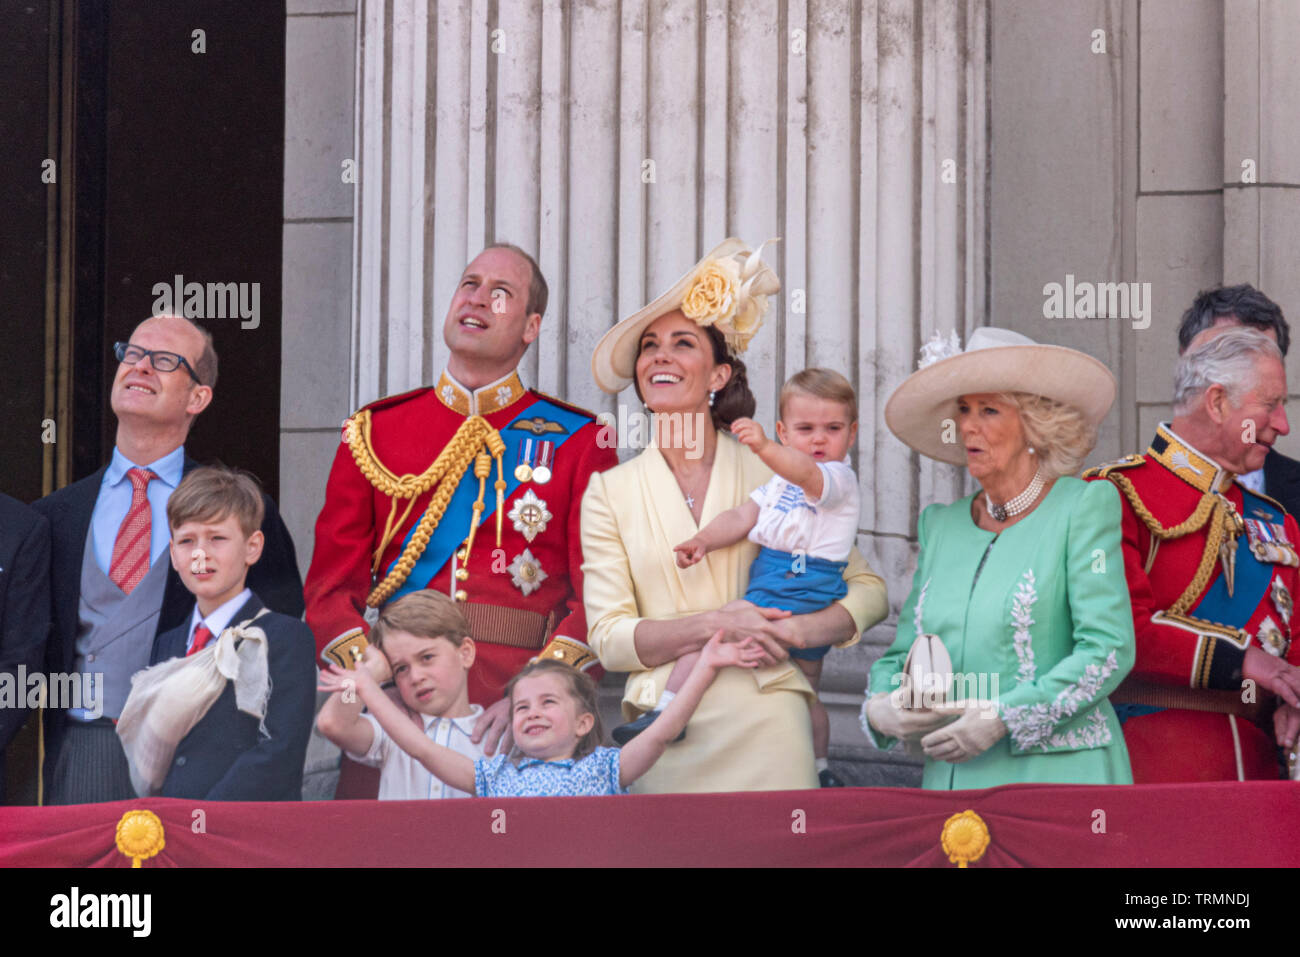 royal-family-watching-the-queens-birthday-flypast-from-the-balcony-of-buckingham-palace-london-uk-after-trooping-the-colour-2019-prince-louis-TRMNDJ.jpg